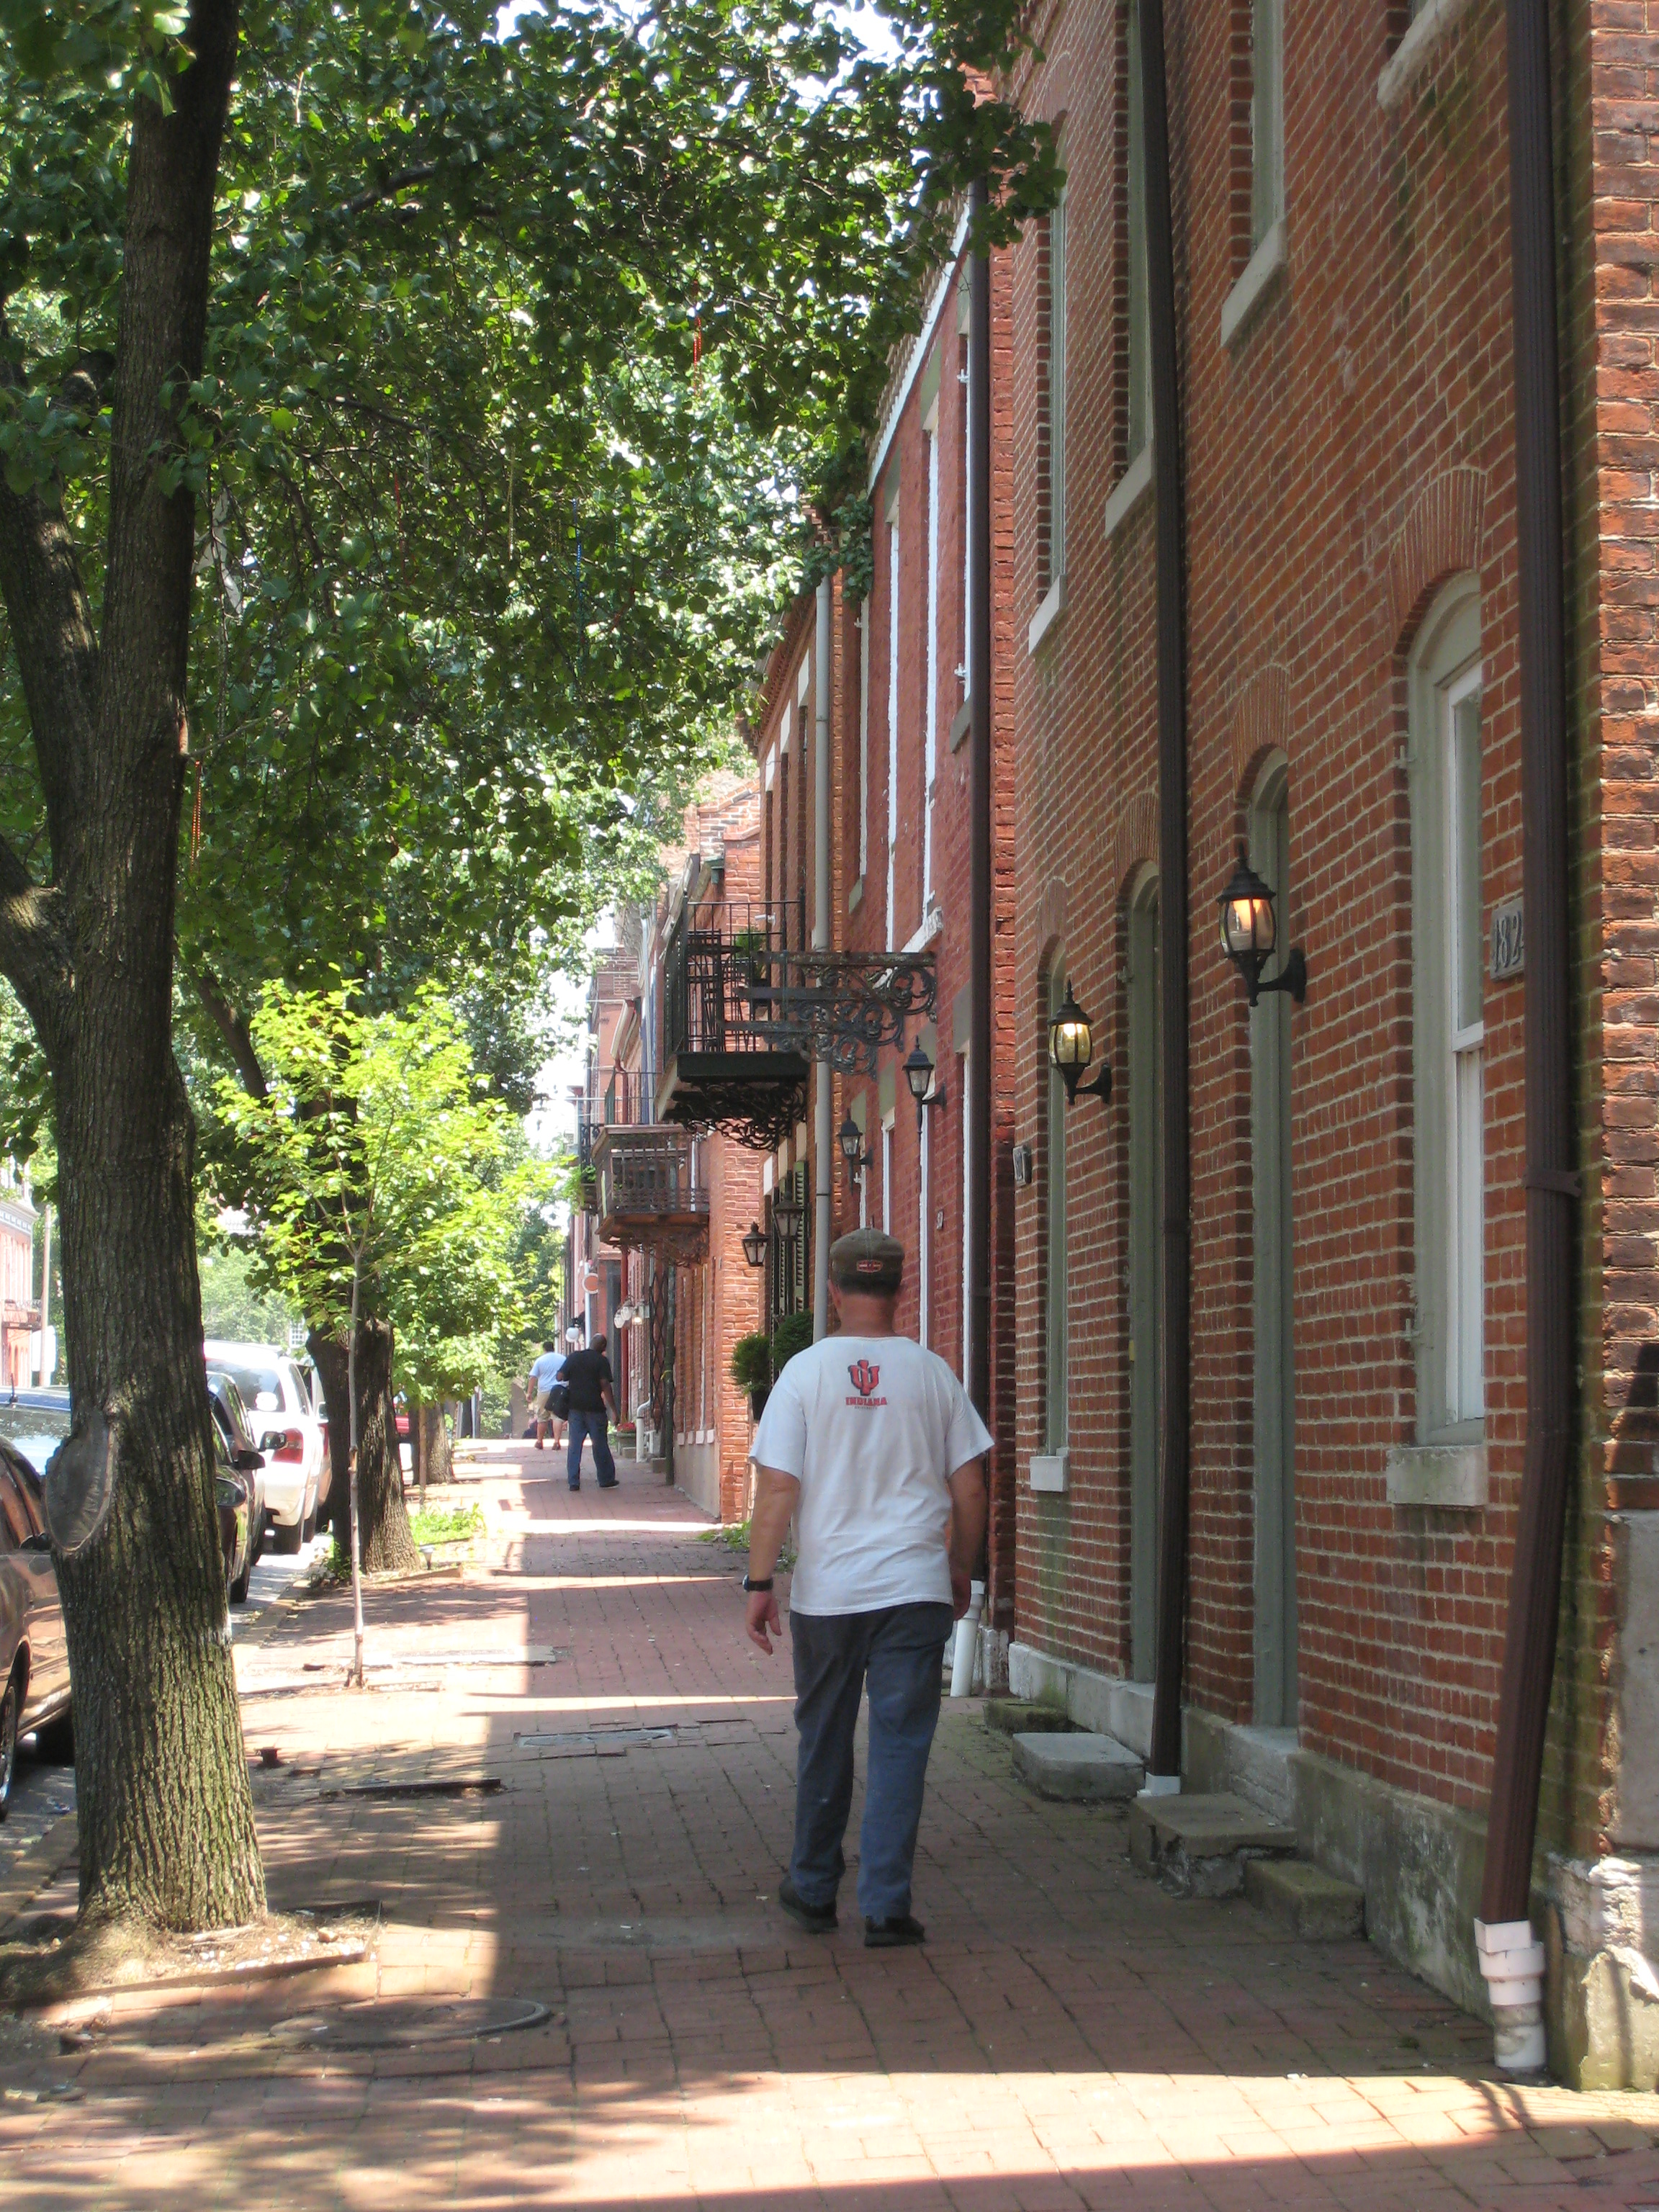 Soulard Neighborhood